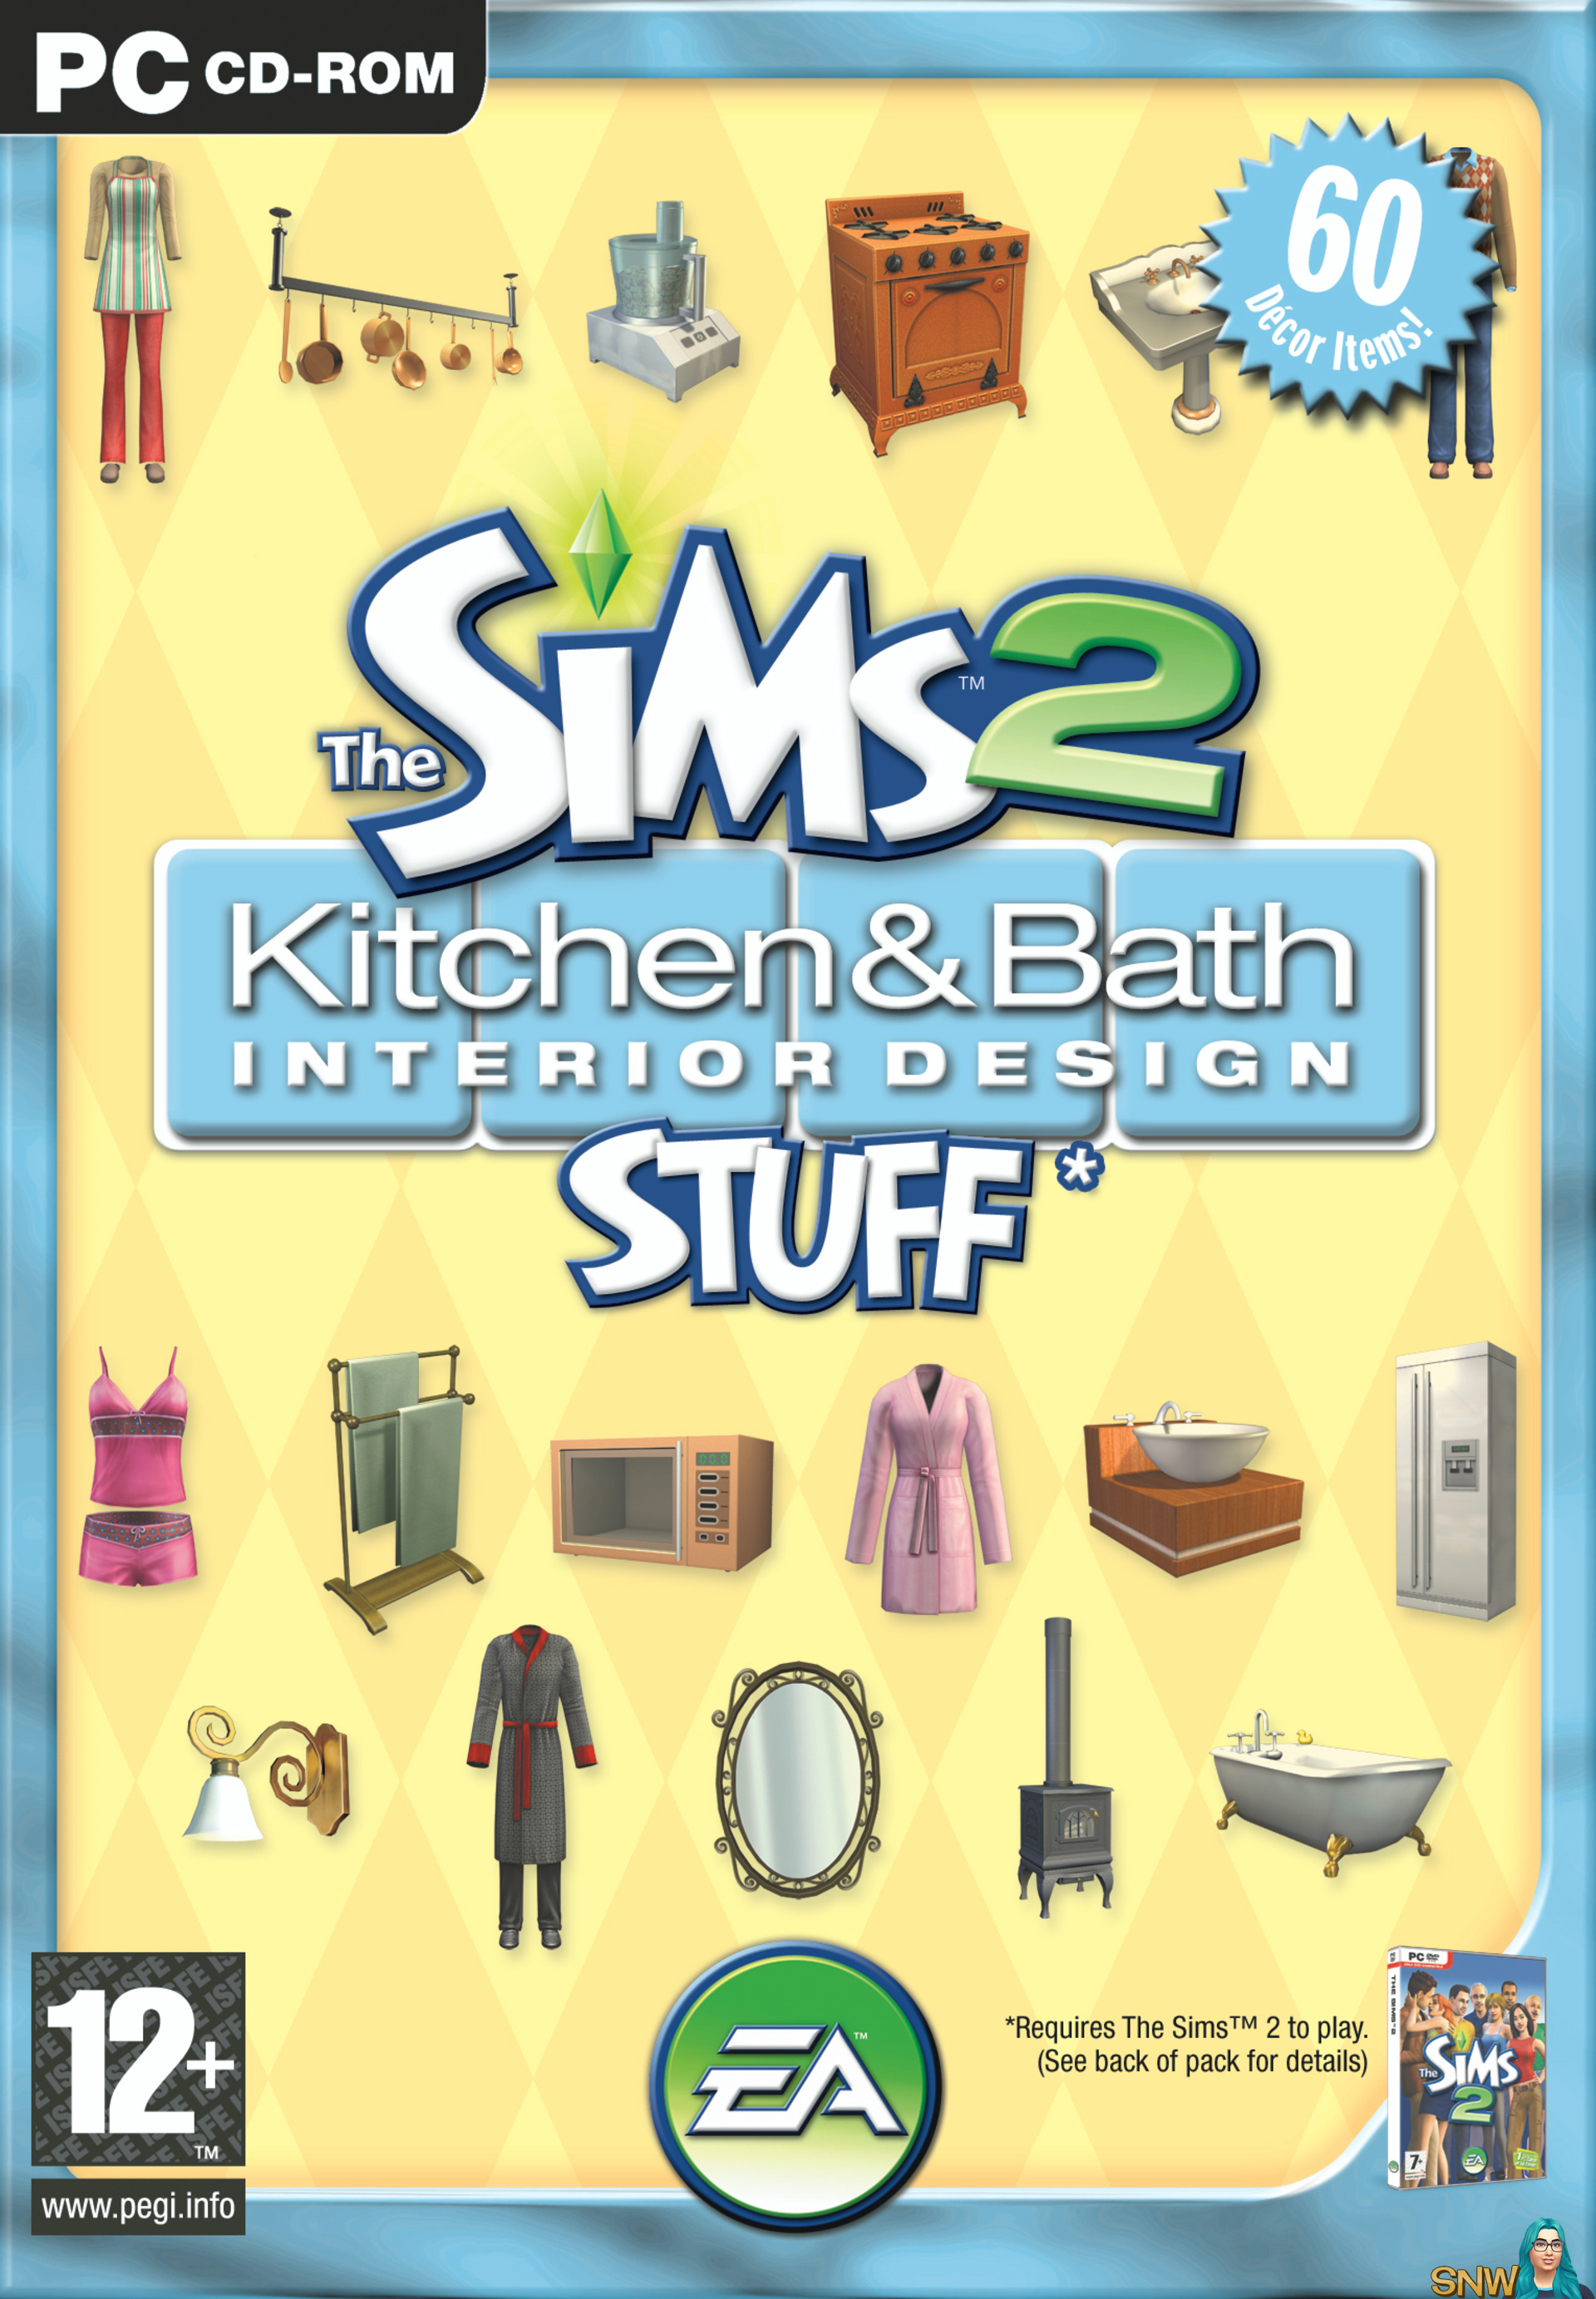 the sims 2 kitchen amp bath interior design stuff snw